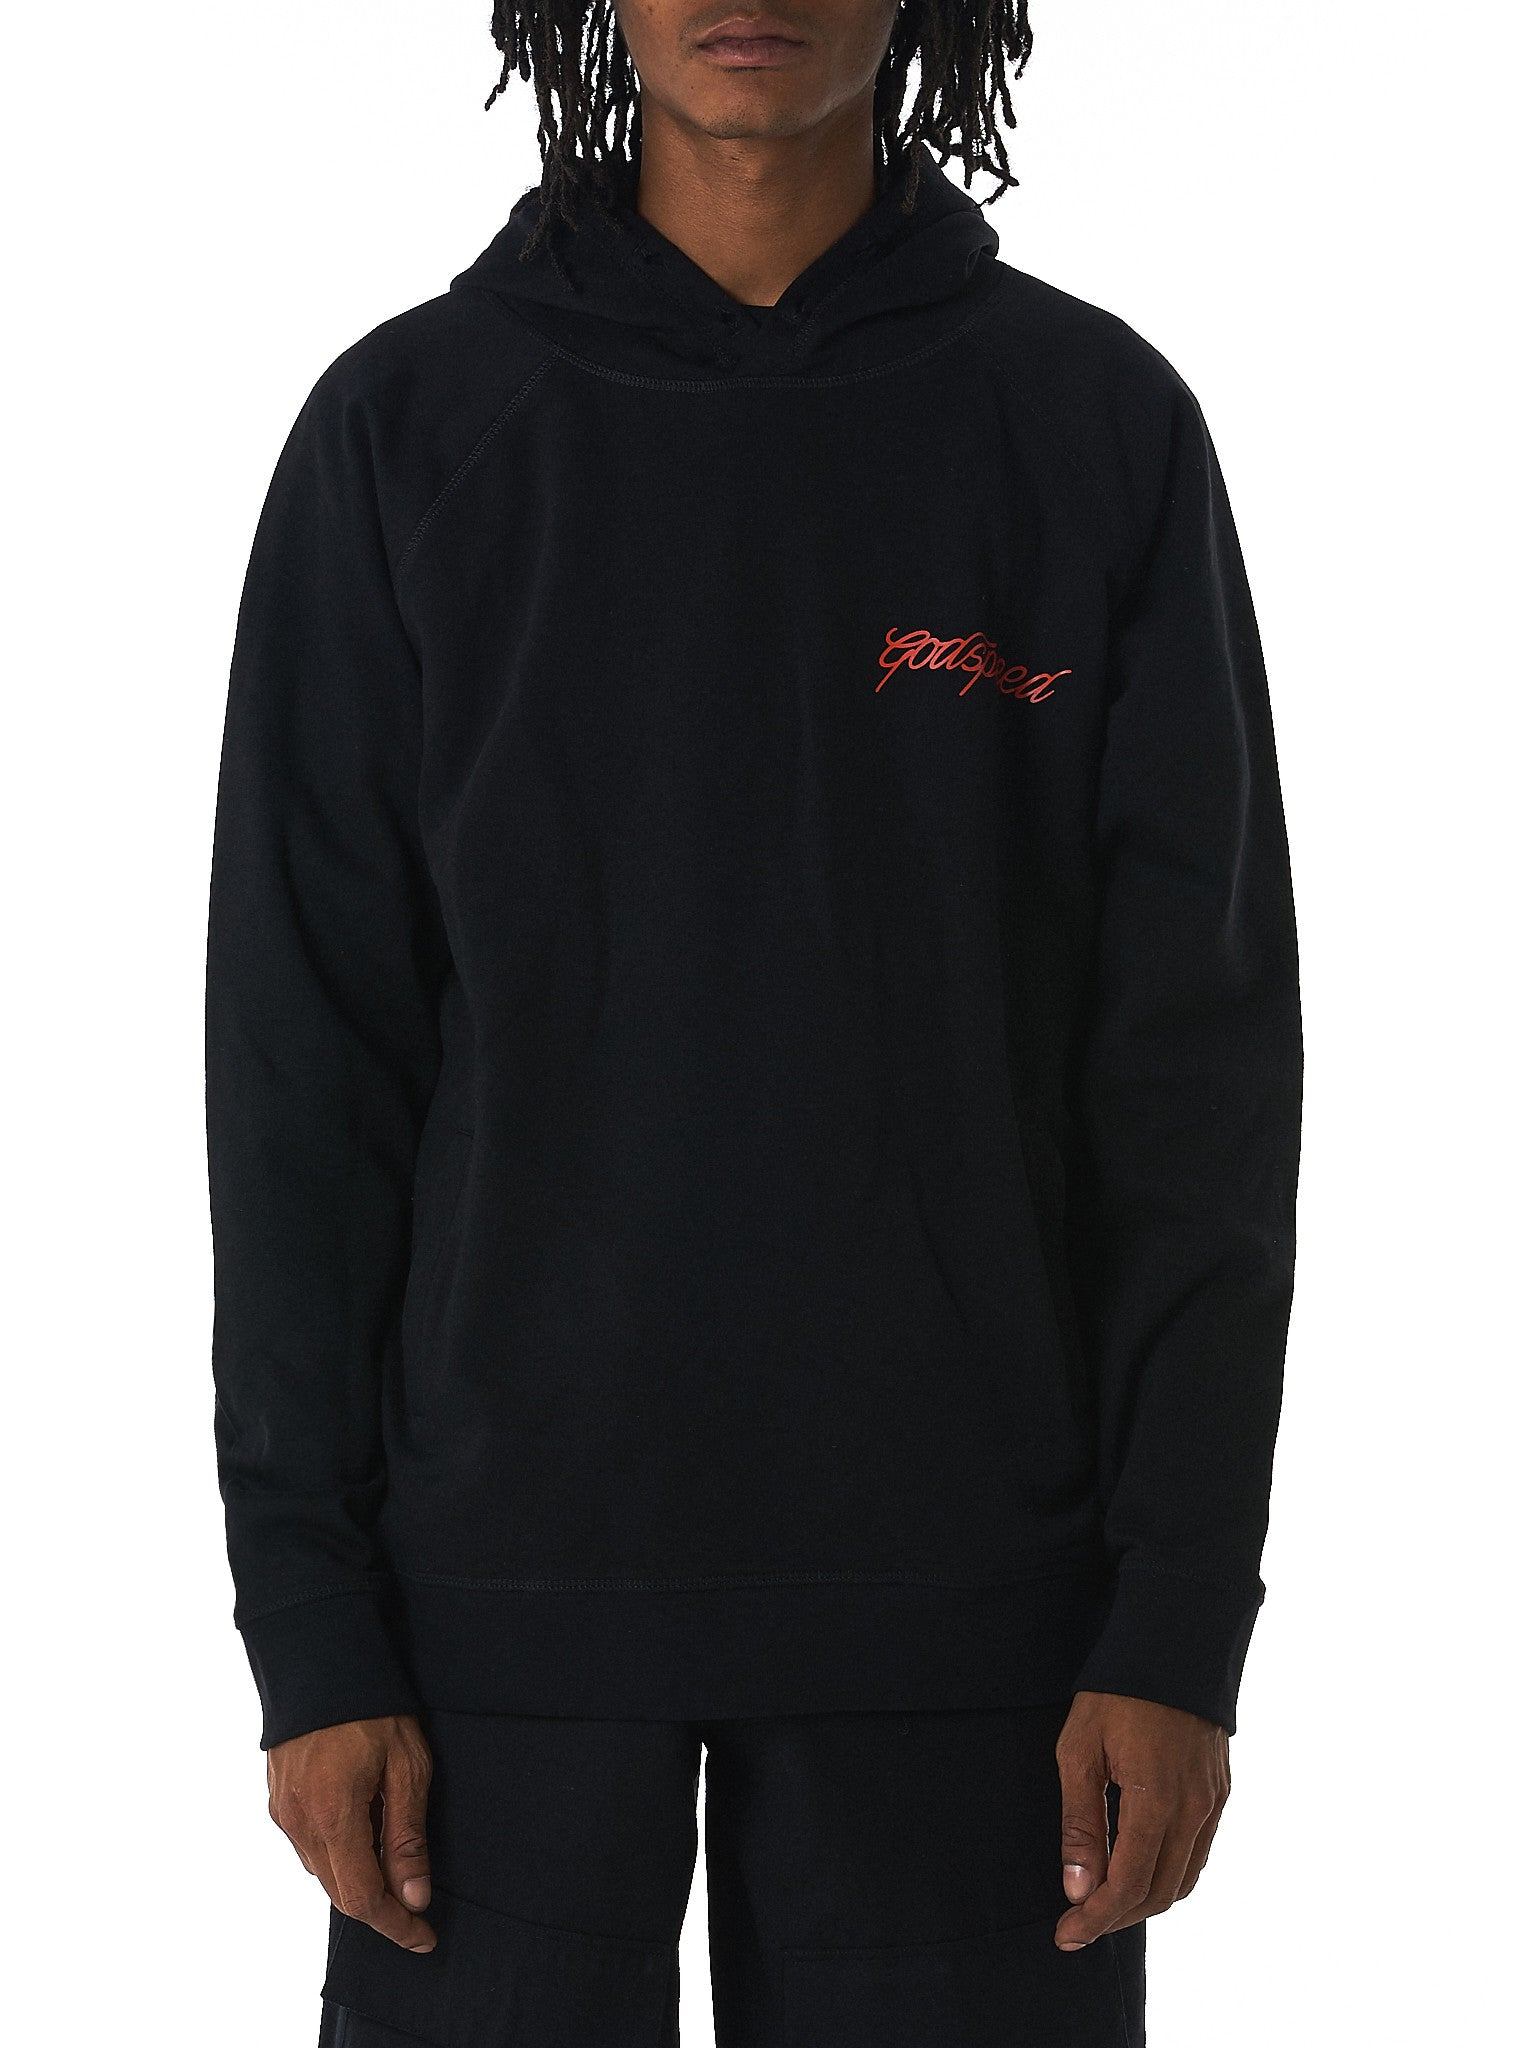 GEO 'Godspeed' hooded sweater hlorenzo front view